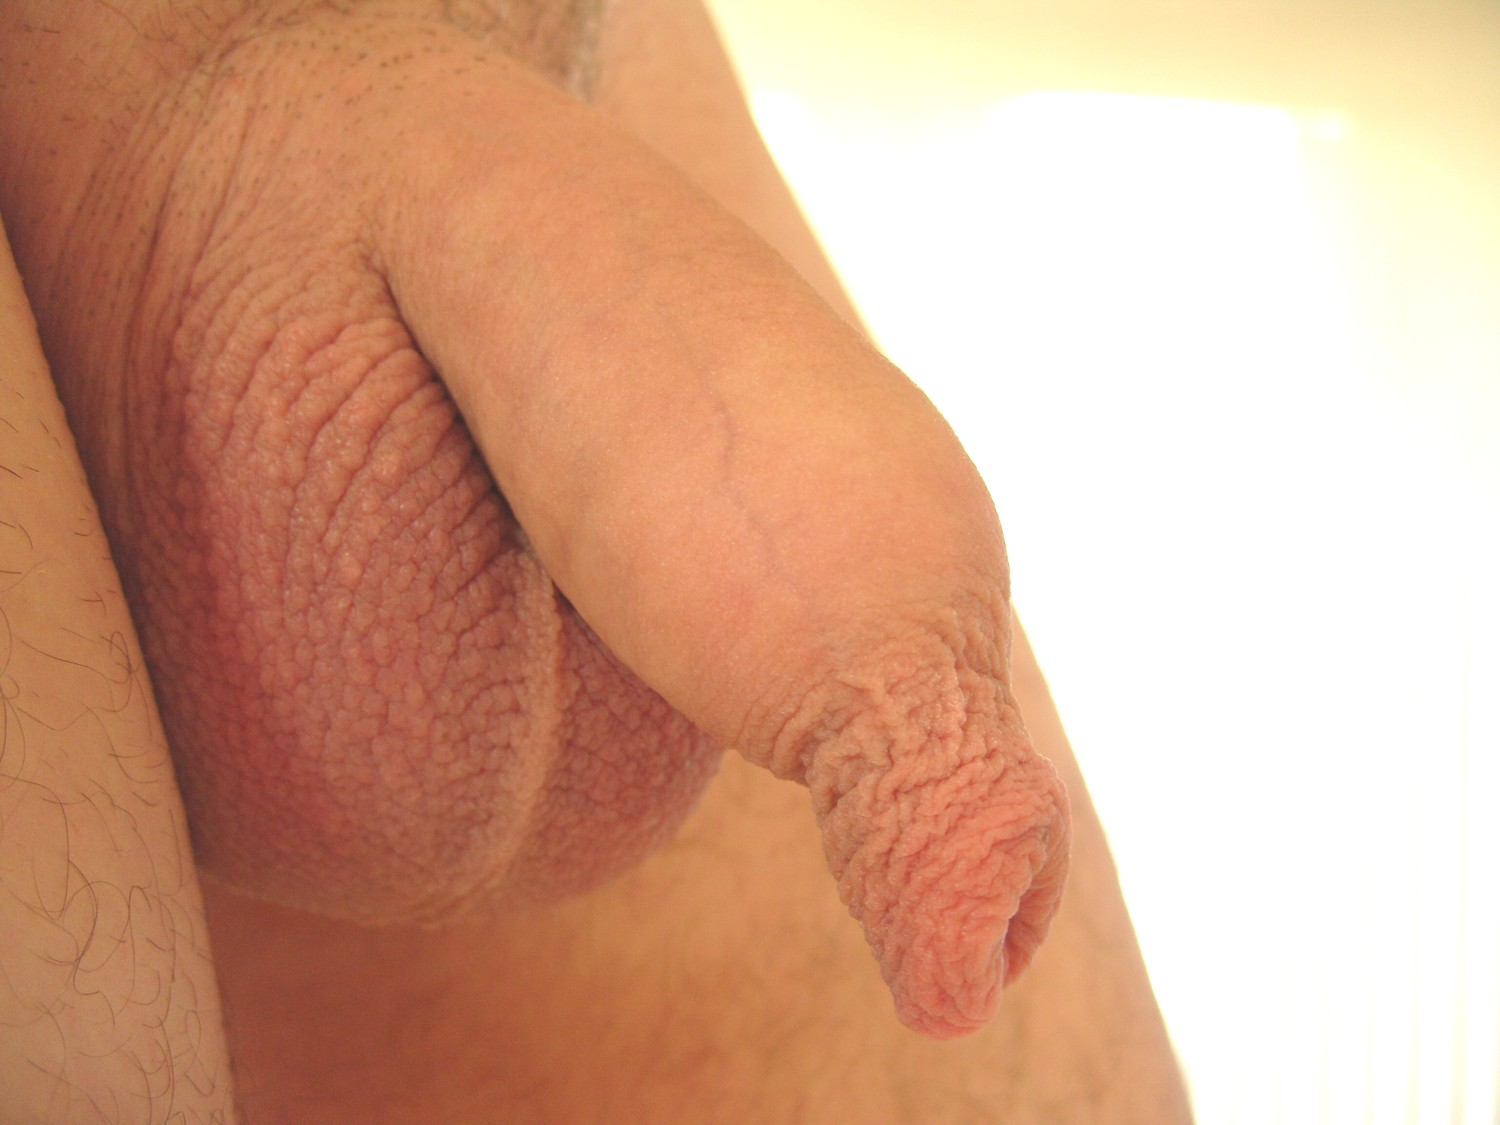 Does like look penis uncircumcised something is